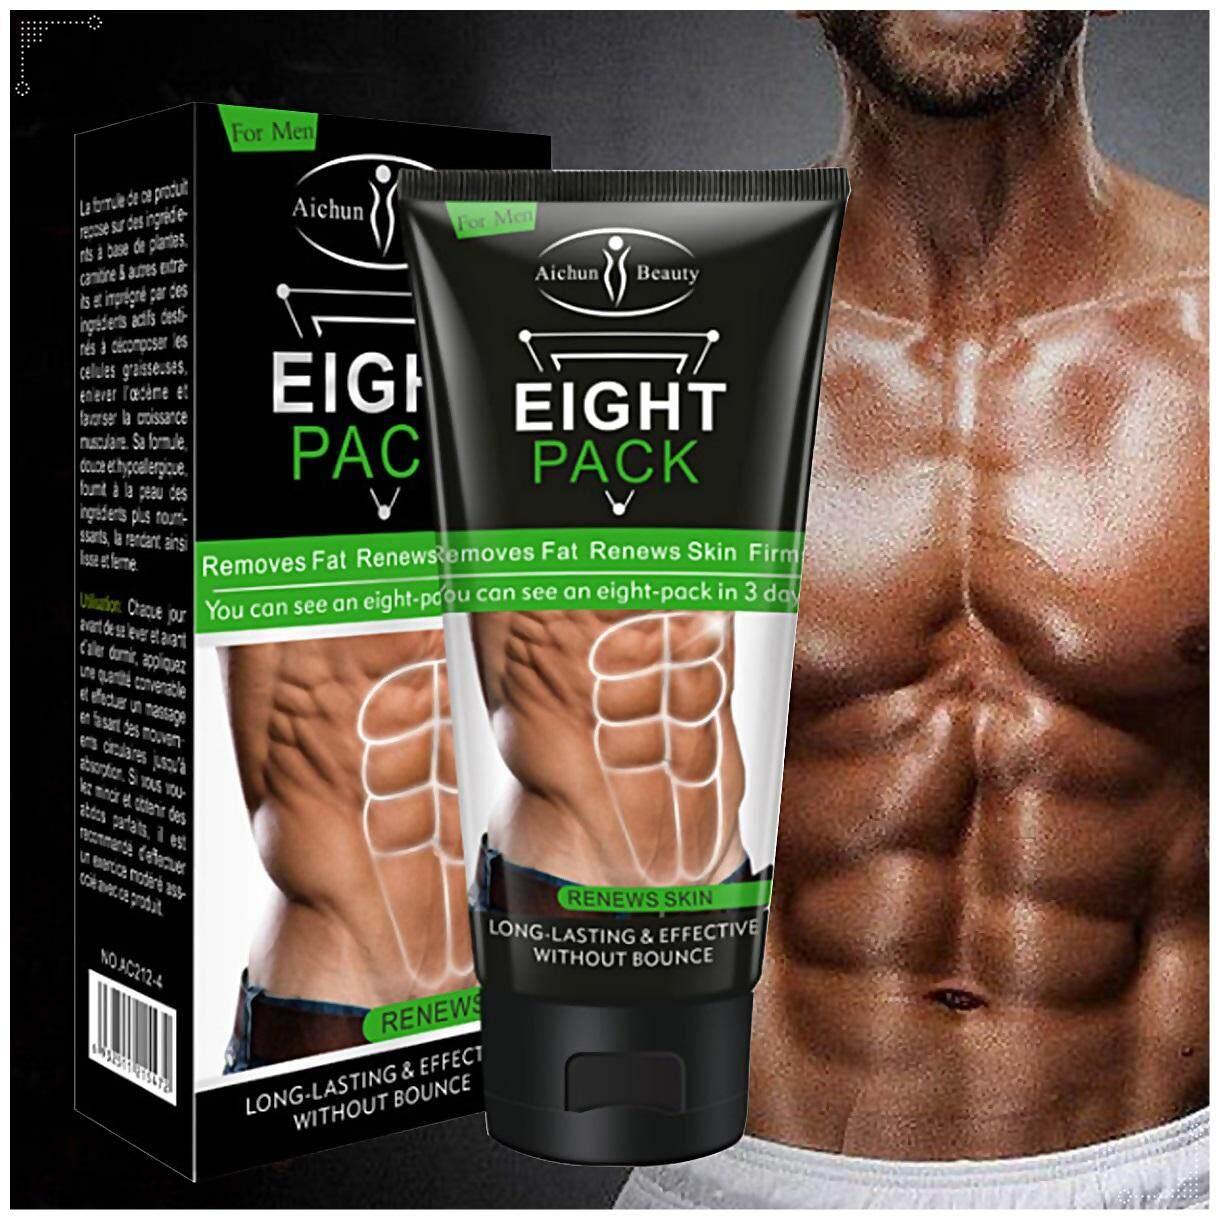 Aichun Beauty Eight Pack For Men Strong Waist Manly Torso Smooth Lines Press Fit By Sigma.